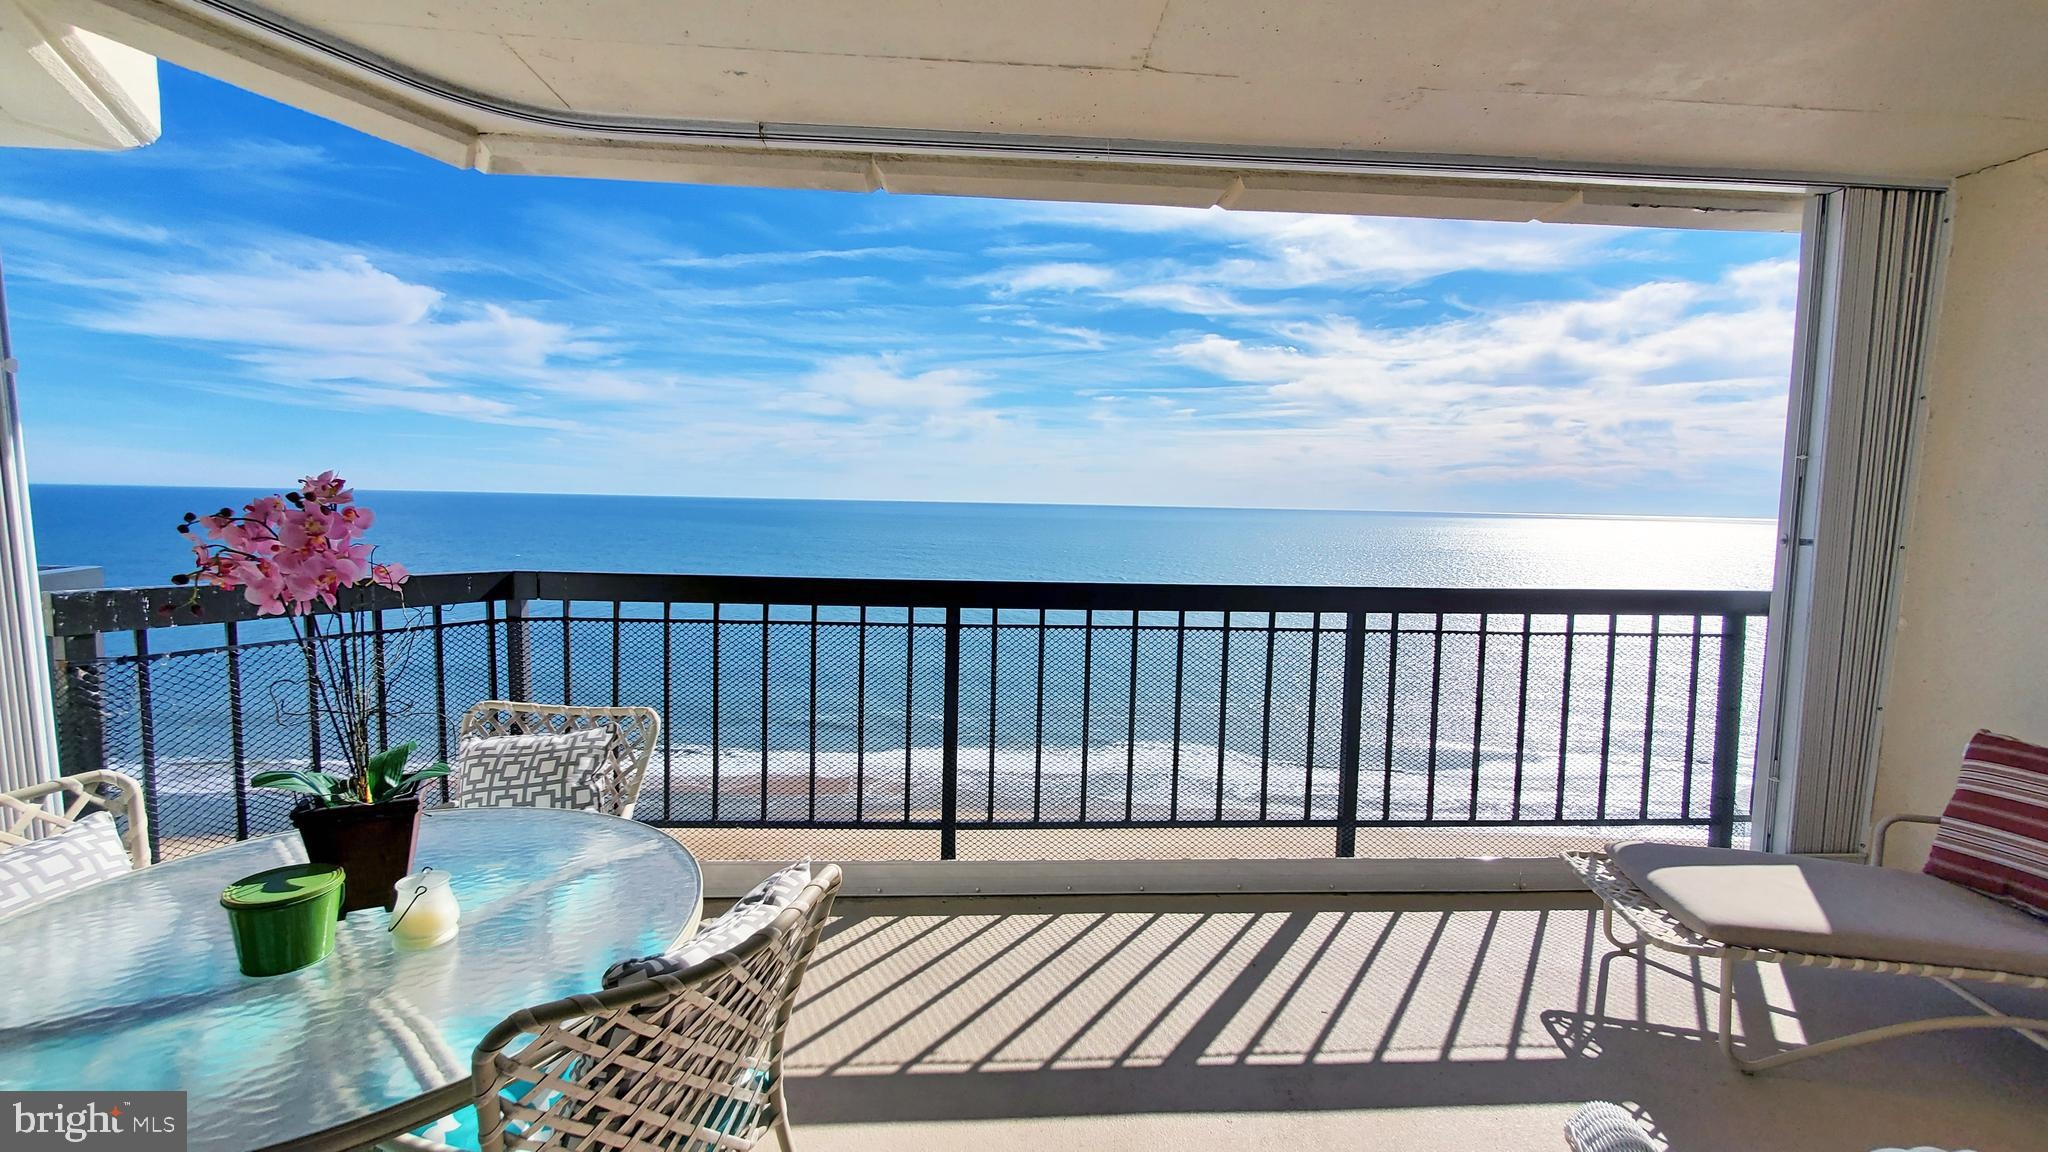 Opportunity Knocks with this Direct Oceanfront 2Bedroom/2Bath Penthouse Condo in a masonry building with spectacular views from both the Beachfront and Bay View Balconies!  Live the beach life enjoying both Sunsets and Sunrises all from the privacy of the two oversized balconies.  The condo features hurricane shutters, tile floors, newly renovated bathrooms, updated kitchen and a newer full-size washer and dryer.  You will notice the large living area with room to spread out while gazing at the beautiful horizon of the Atlantic Ocean.  Conveniently located in North Ocean City near Northside Park, restaurants, shopping, theaters, mall, and grocery stores.  The condo comes complete the viewing of the fourth of July fireworks right from your bay view balcony!  The building offers an indoor pool, secure newly renovated lobby and two parking spots. Did I forget to mention the private storage closet located on your Bay View Balcony?  Make sure you look at the renderings under documents for beautiful new lobby to be completed by Summer…  Do not miss this opportunity to own a private Penthouse Condo in this well-maintained Direct Oceanfront Building!